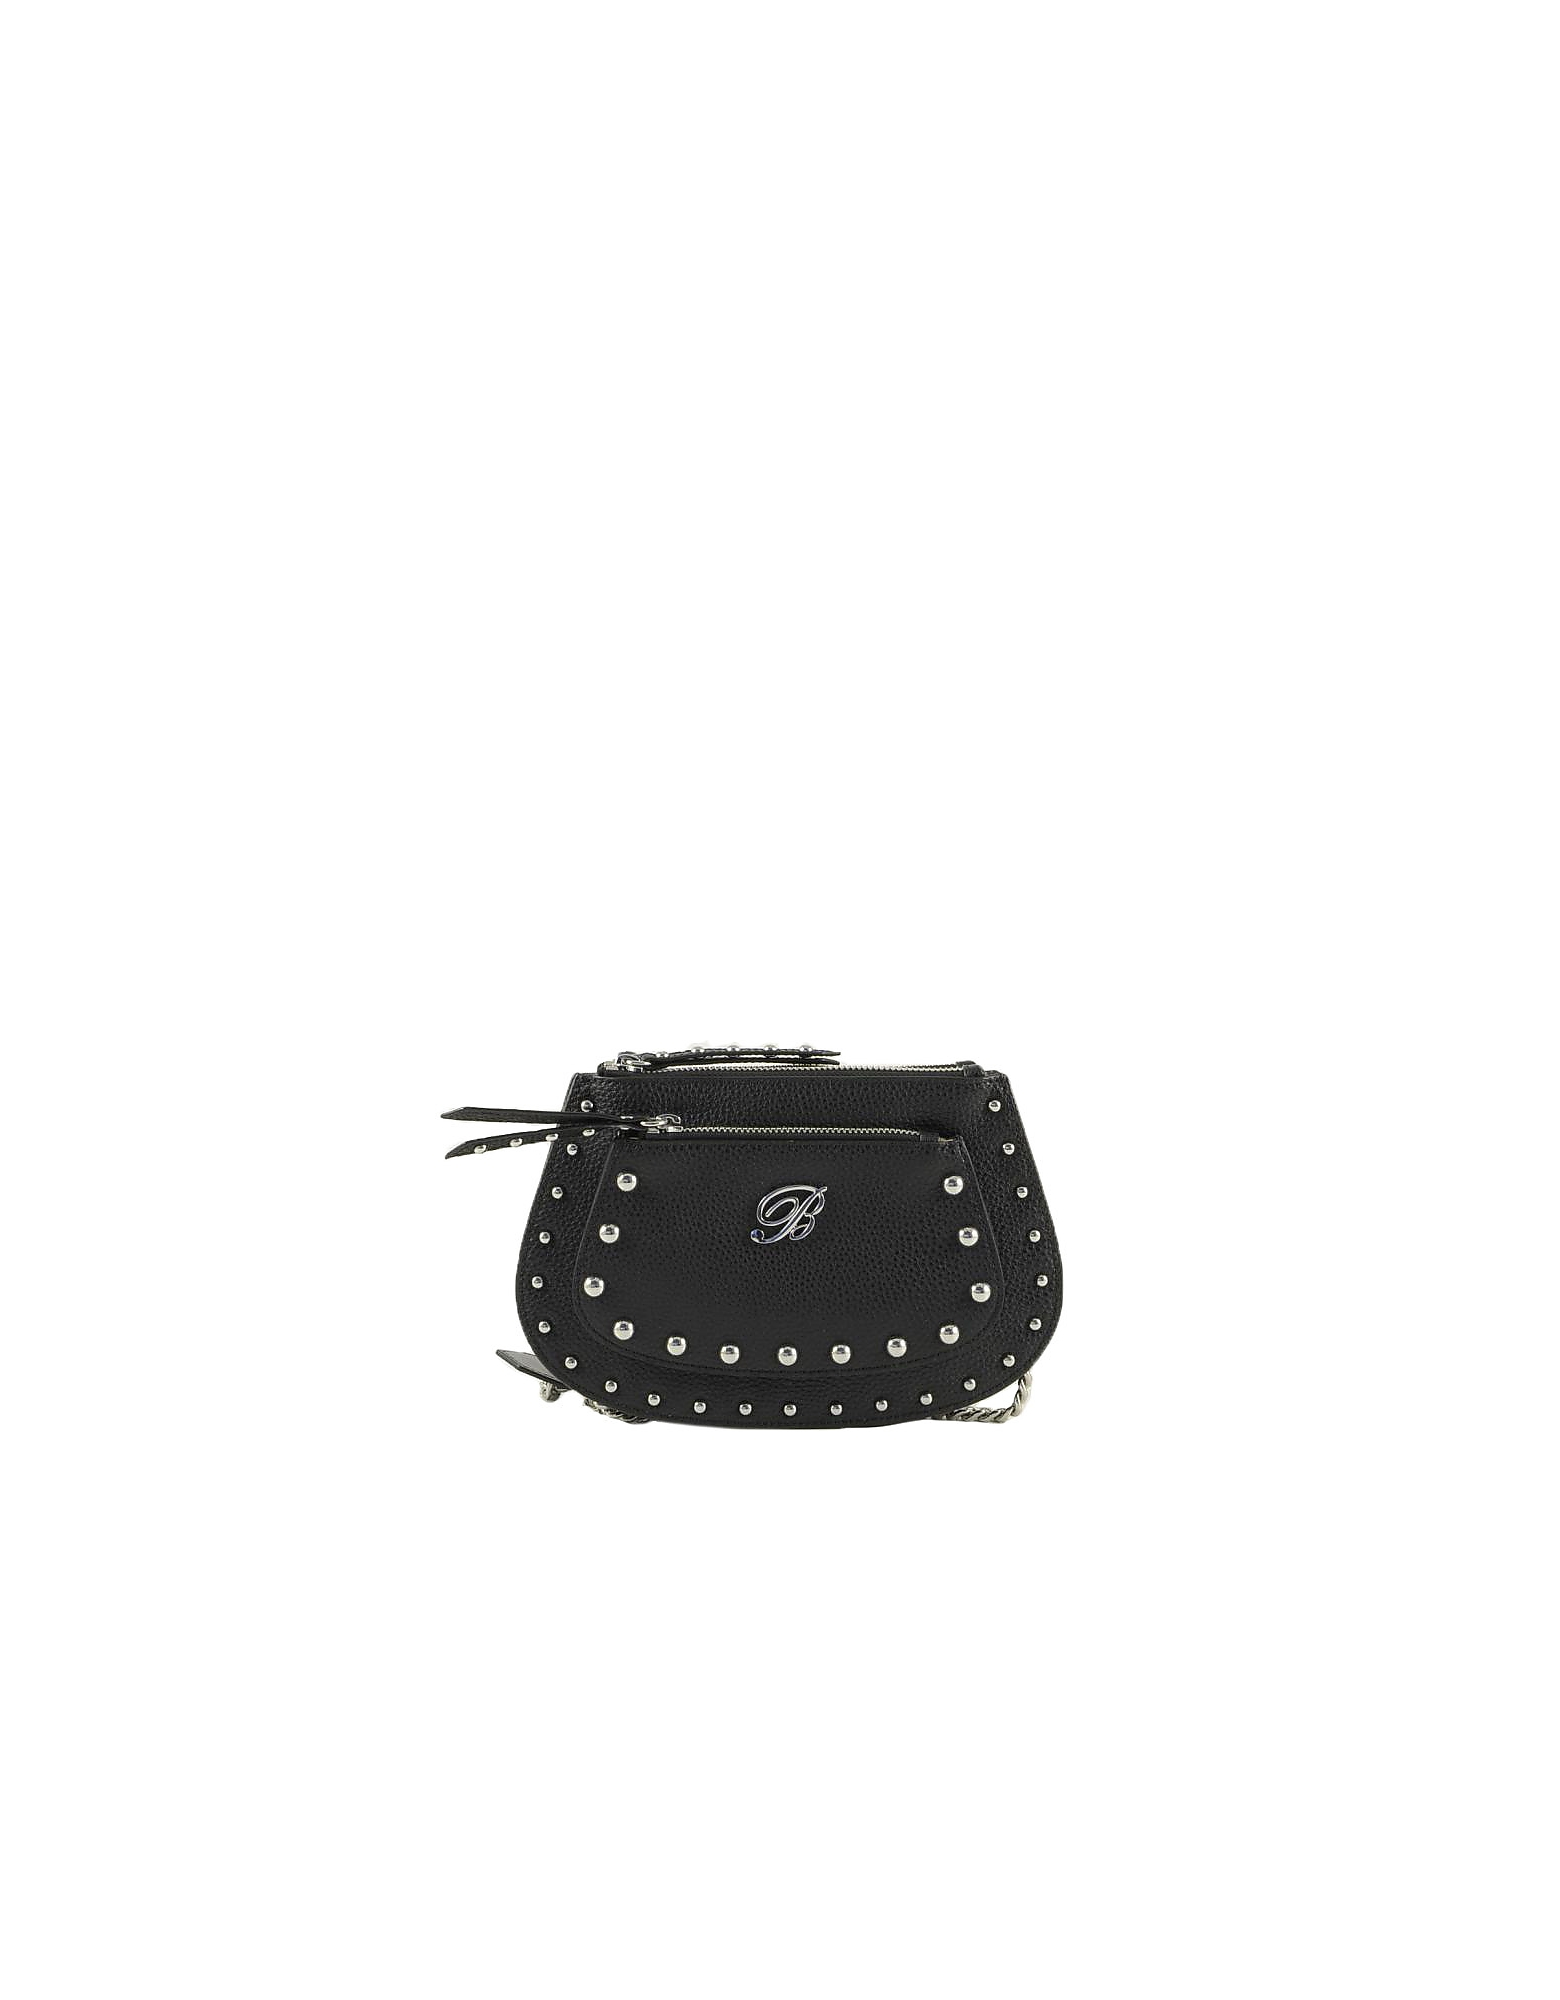 Blumarine Designer Handbags, Andrea Small Black Leather Shoulder Bag